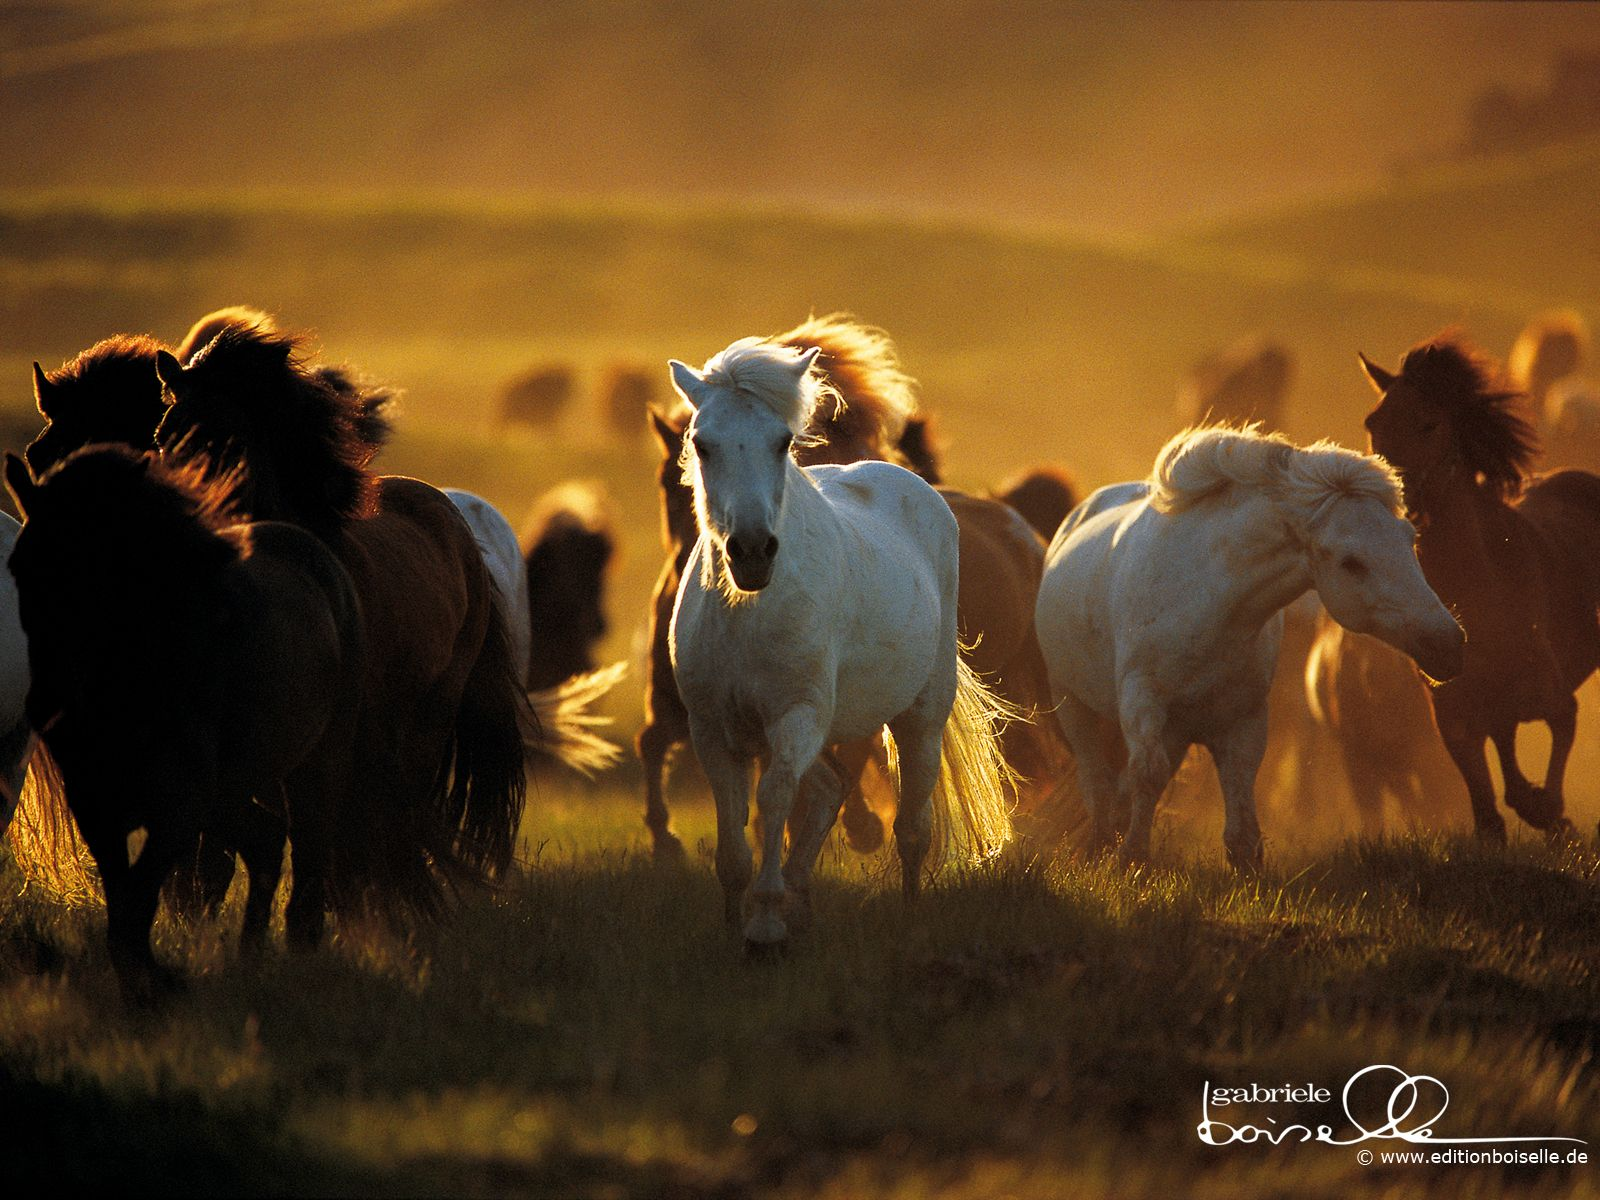 Most Inspiring Wallpaper Horse Country - a3de6baebca8fea036fe966f5ea0e70e  Perfect Image Reference_96564.jpg